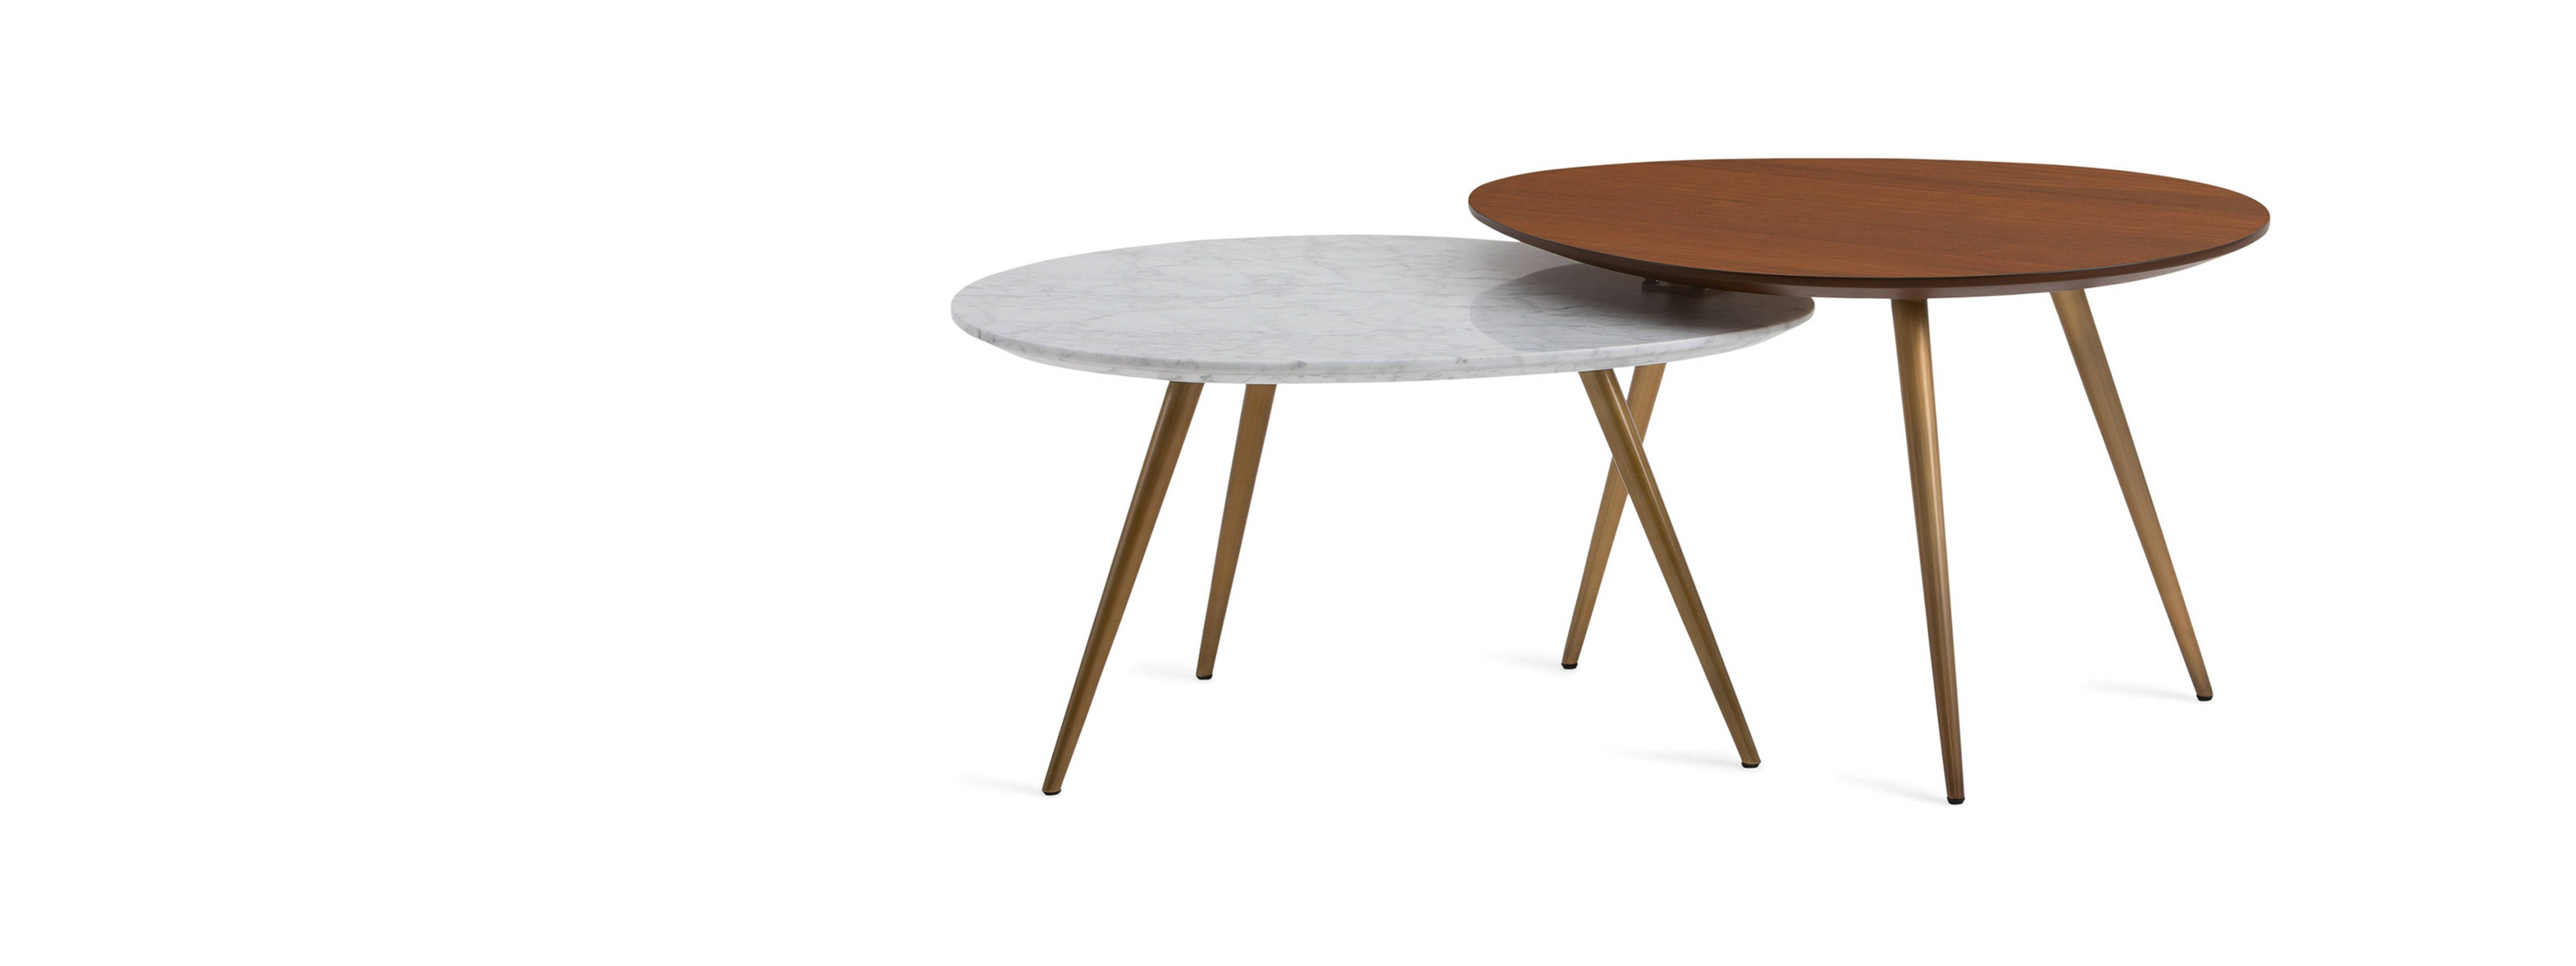 West Elm Work Lily Pad Nesting Tables Steelcase Nesting Tables Table Steelcase [ 1800 x 4800 Pixel ]